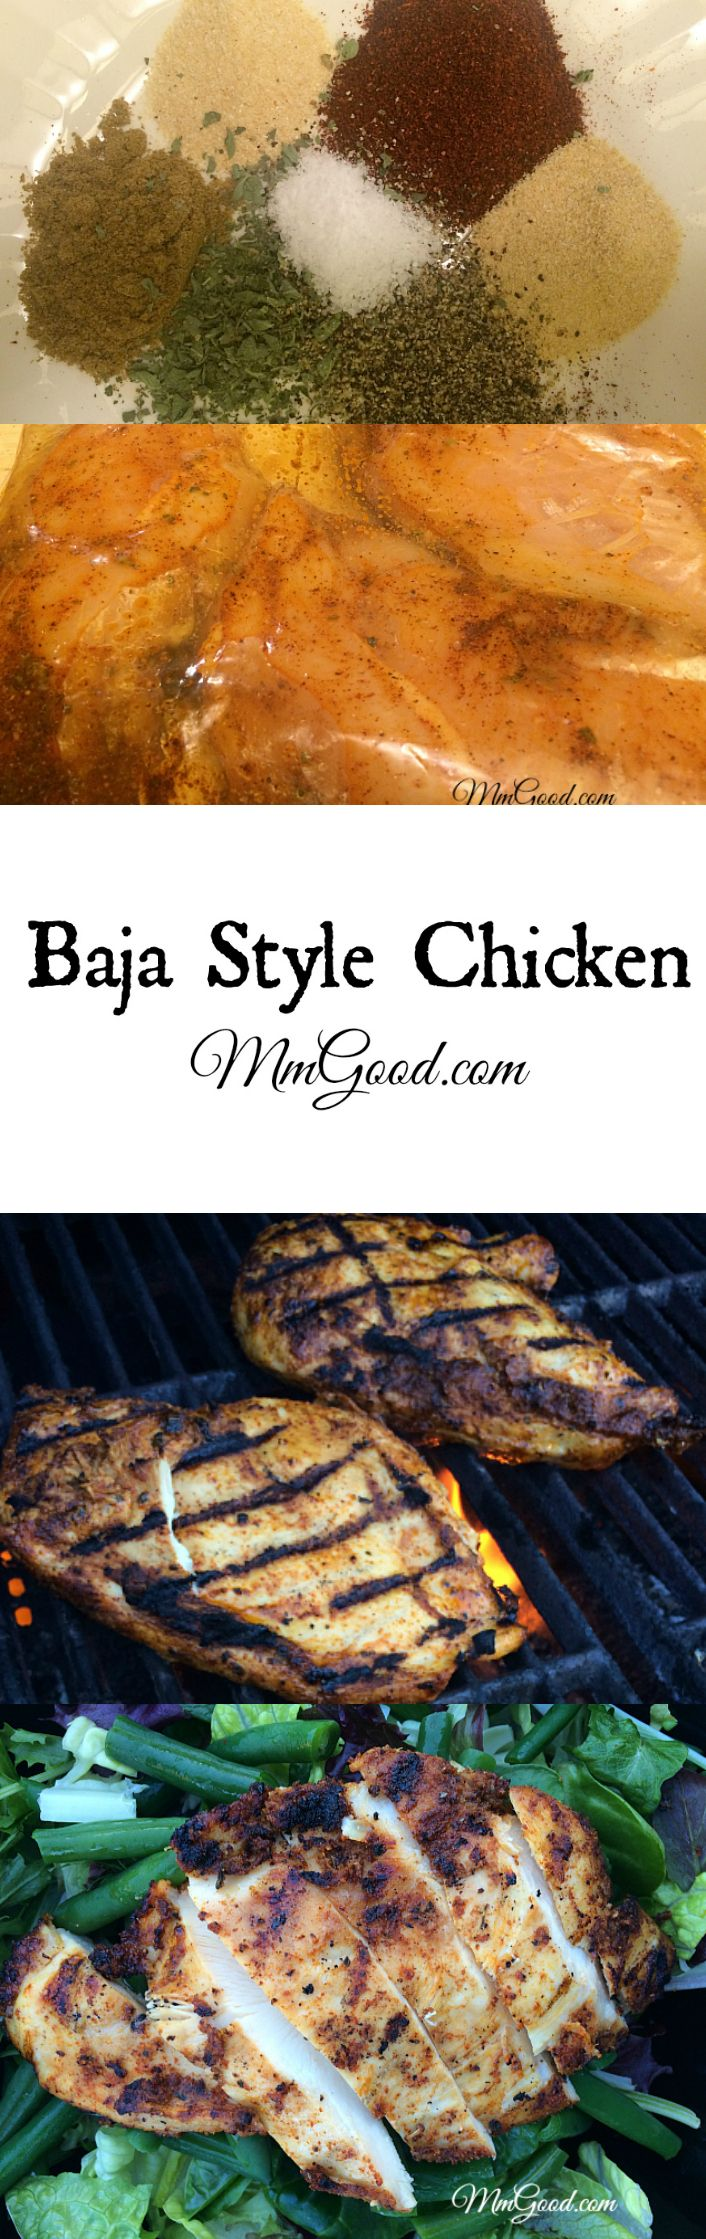 My sister gave me this healthy recipe for baja style grilled chicken. It's super moist, favorable and takes not time to bbq. The marinade is homemade so you know exactly what is in it and it has very little oil so it's healthy!   MmGood.com